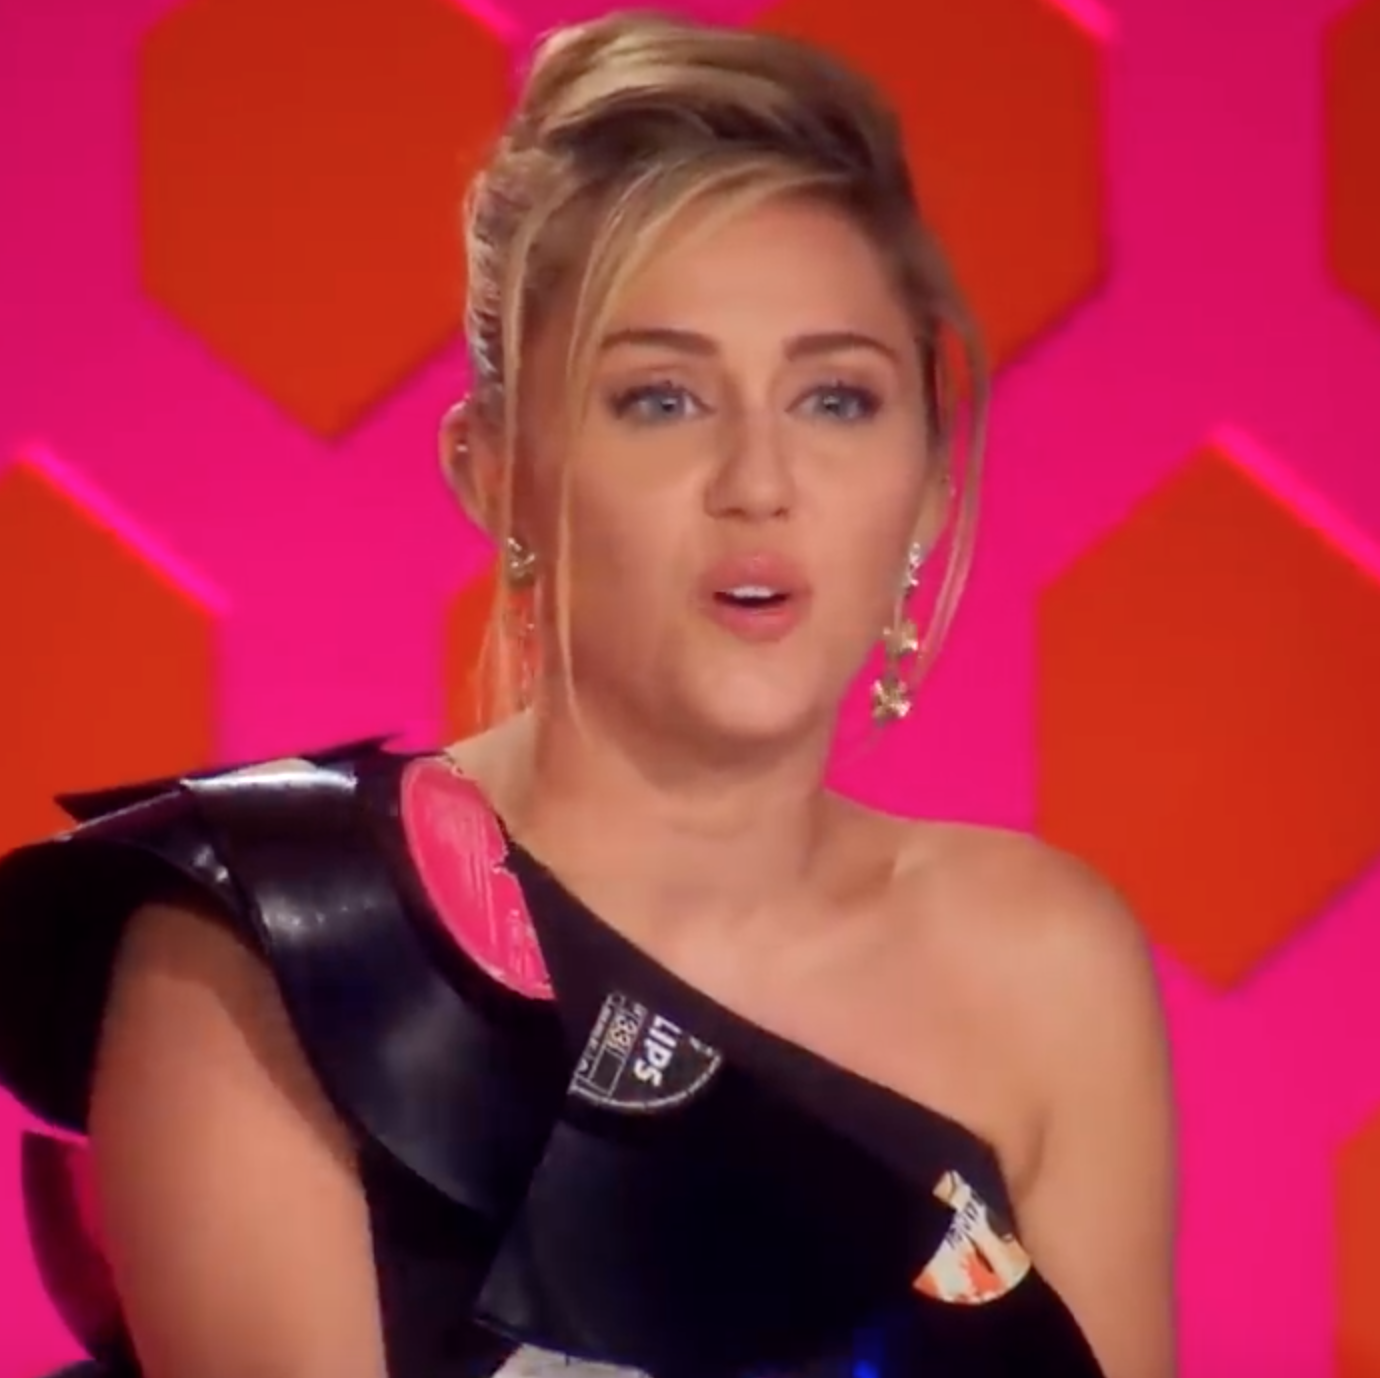 RuPaul's Drag Race reveals full group of amazing guest judges joining Miley Cyrus on season 11